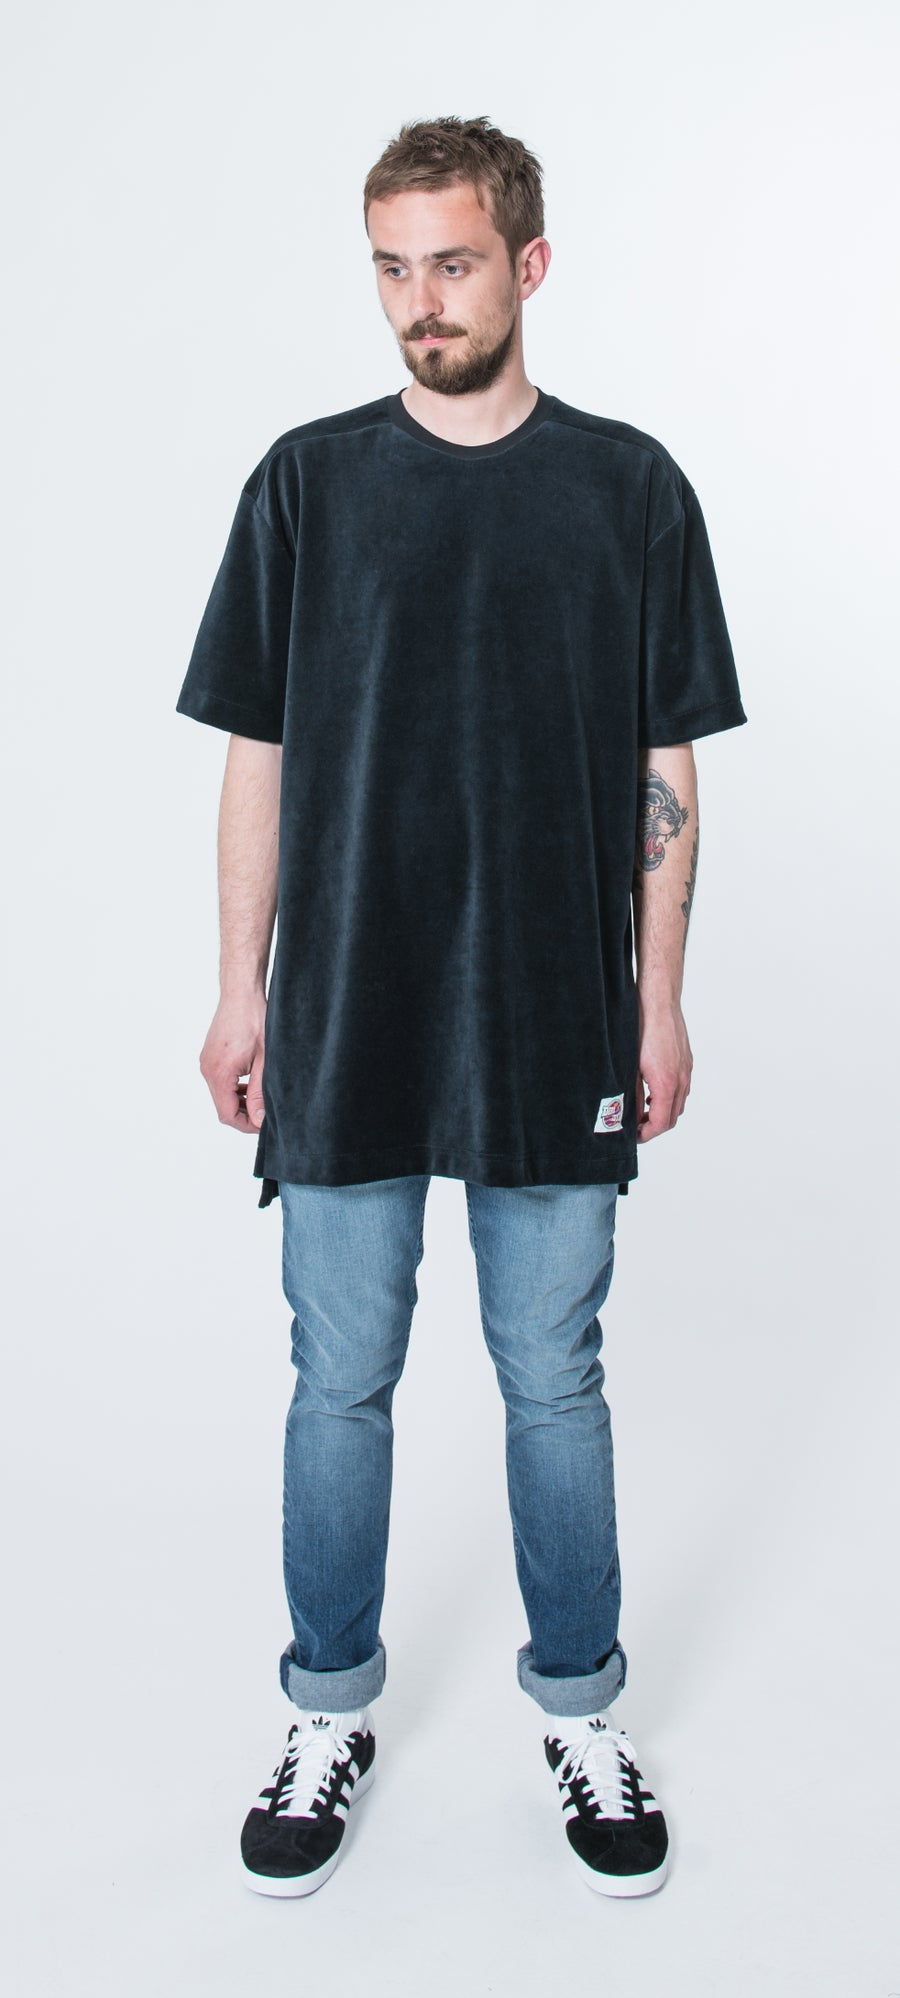 Image of The Jam Tee (Black velvet)